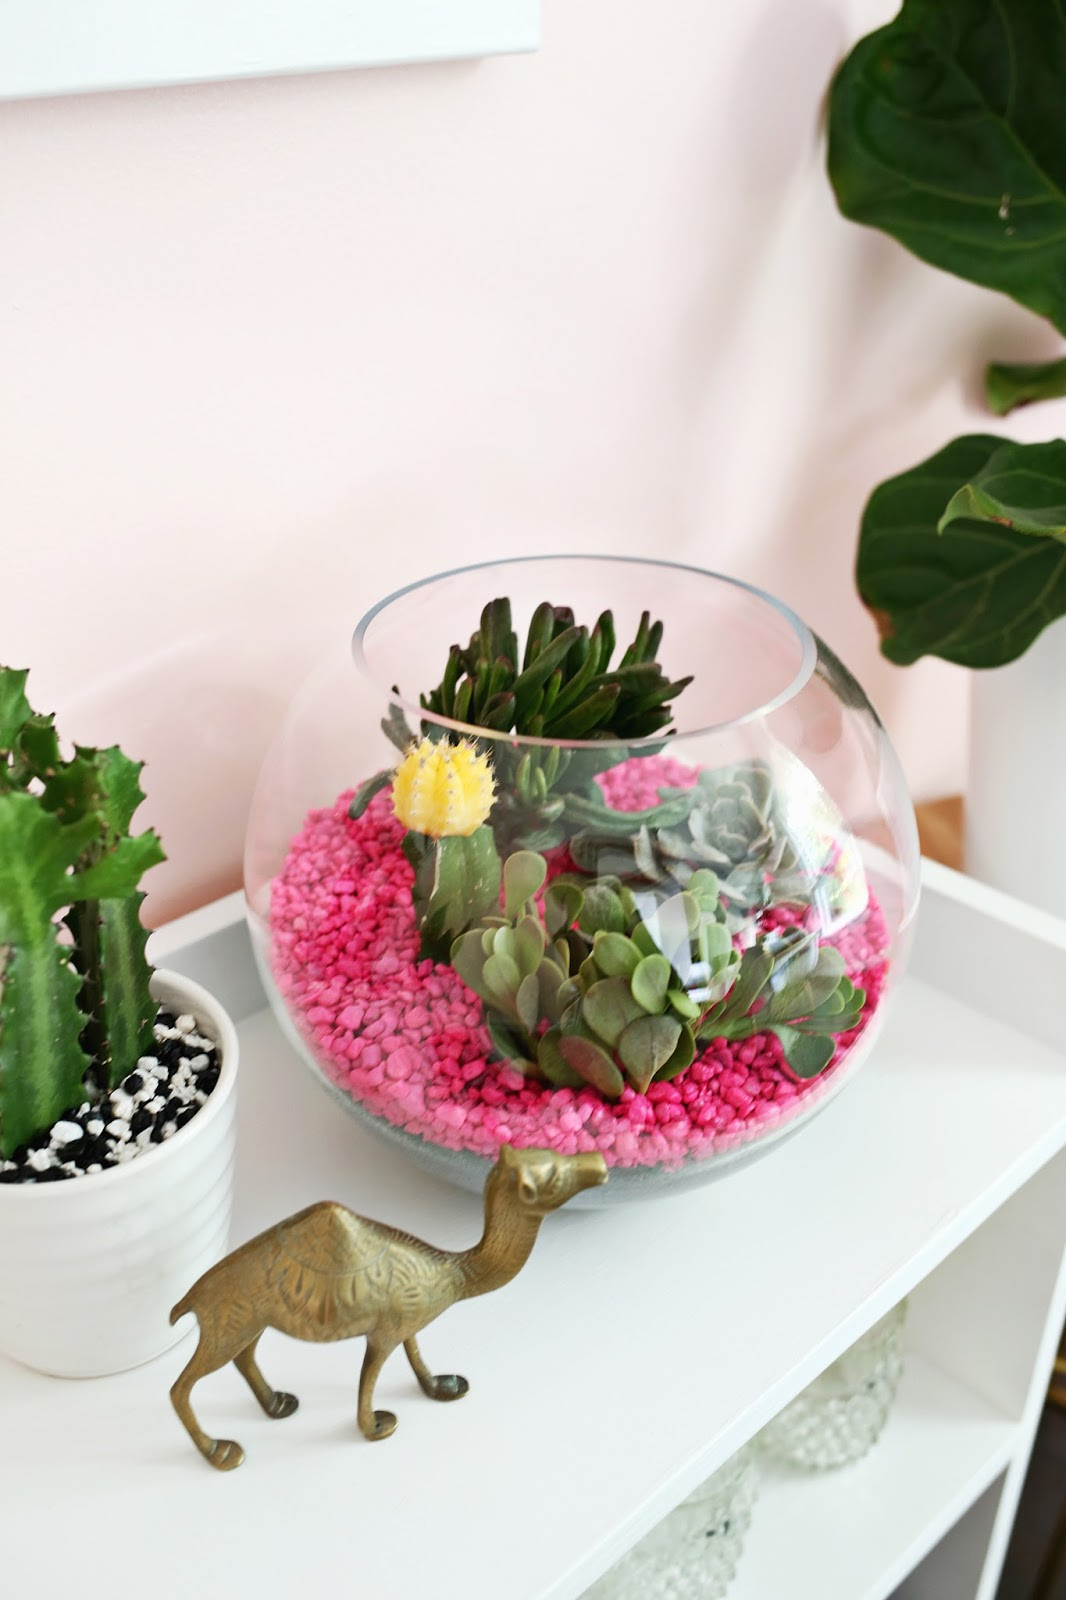 14 Ways to Display Succulents - Hot Pink Terrarium Pebbles